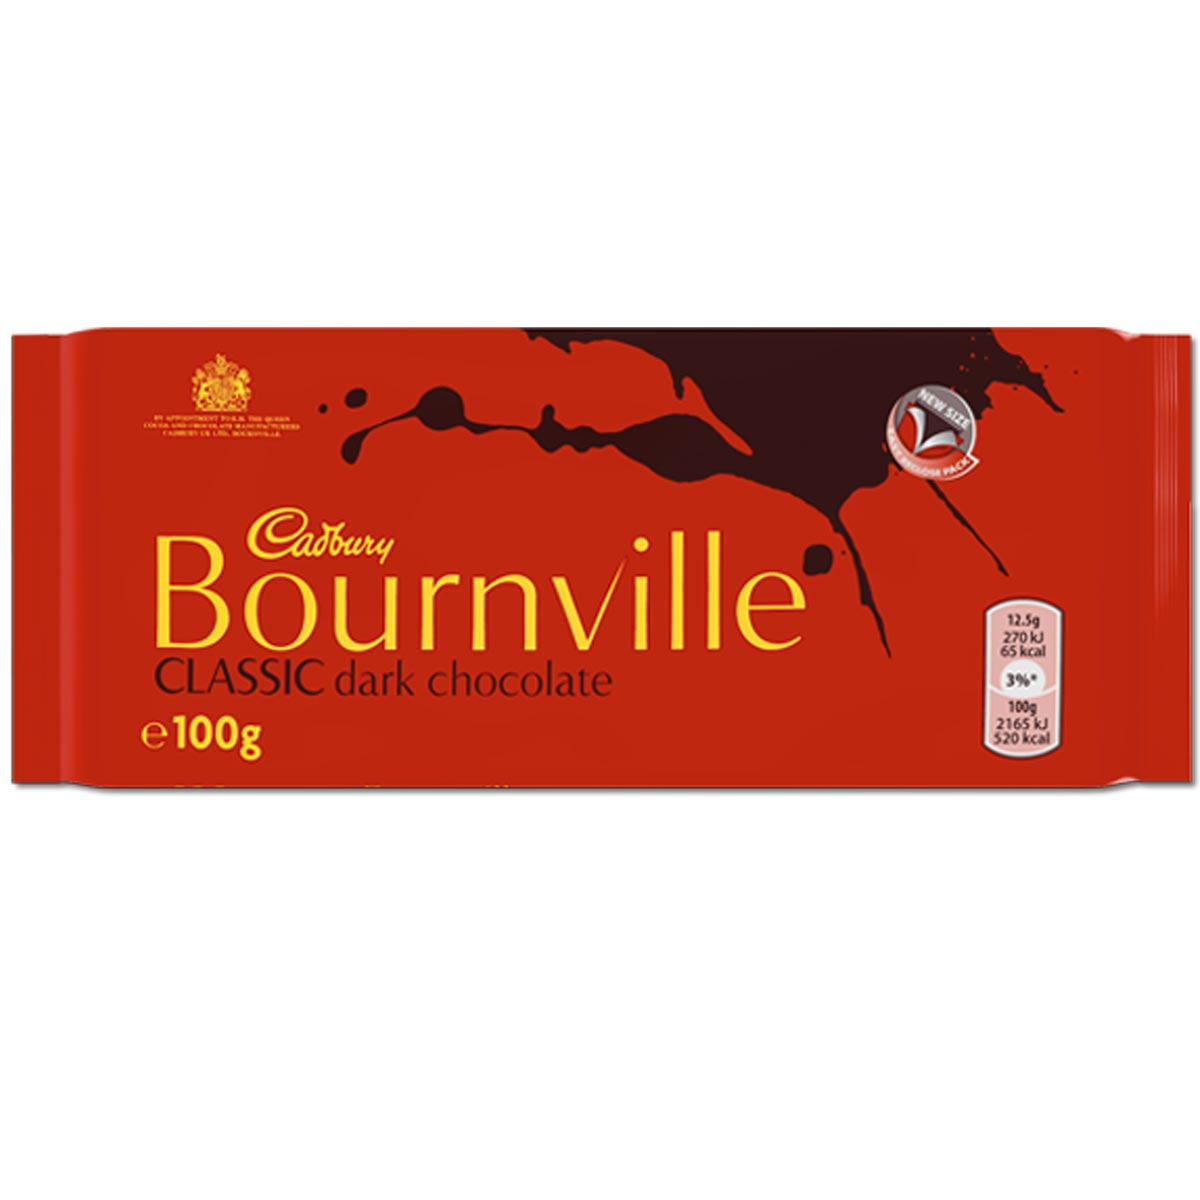 Cadbury Bournville Classic Box of 18